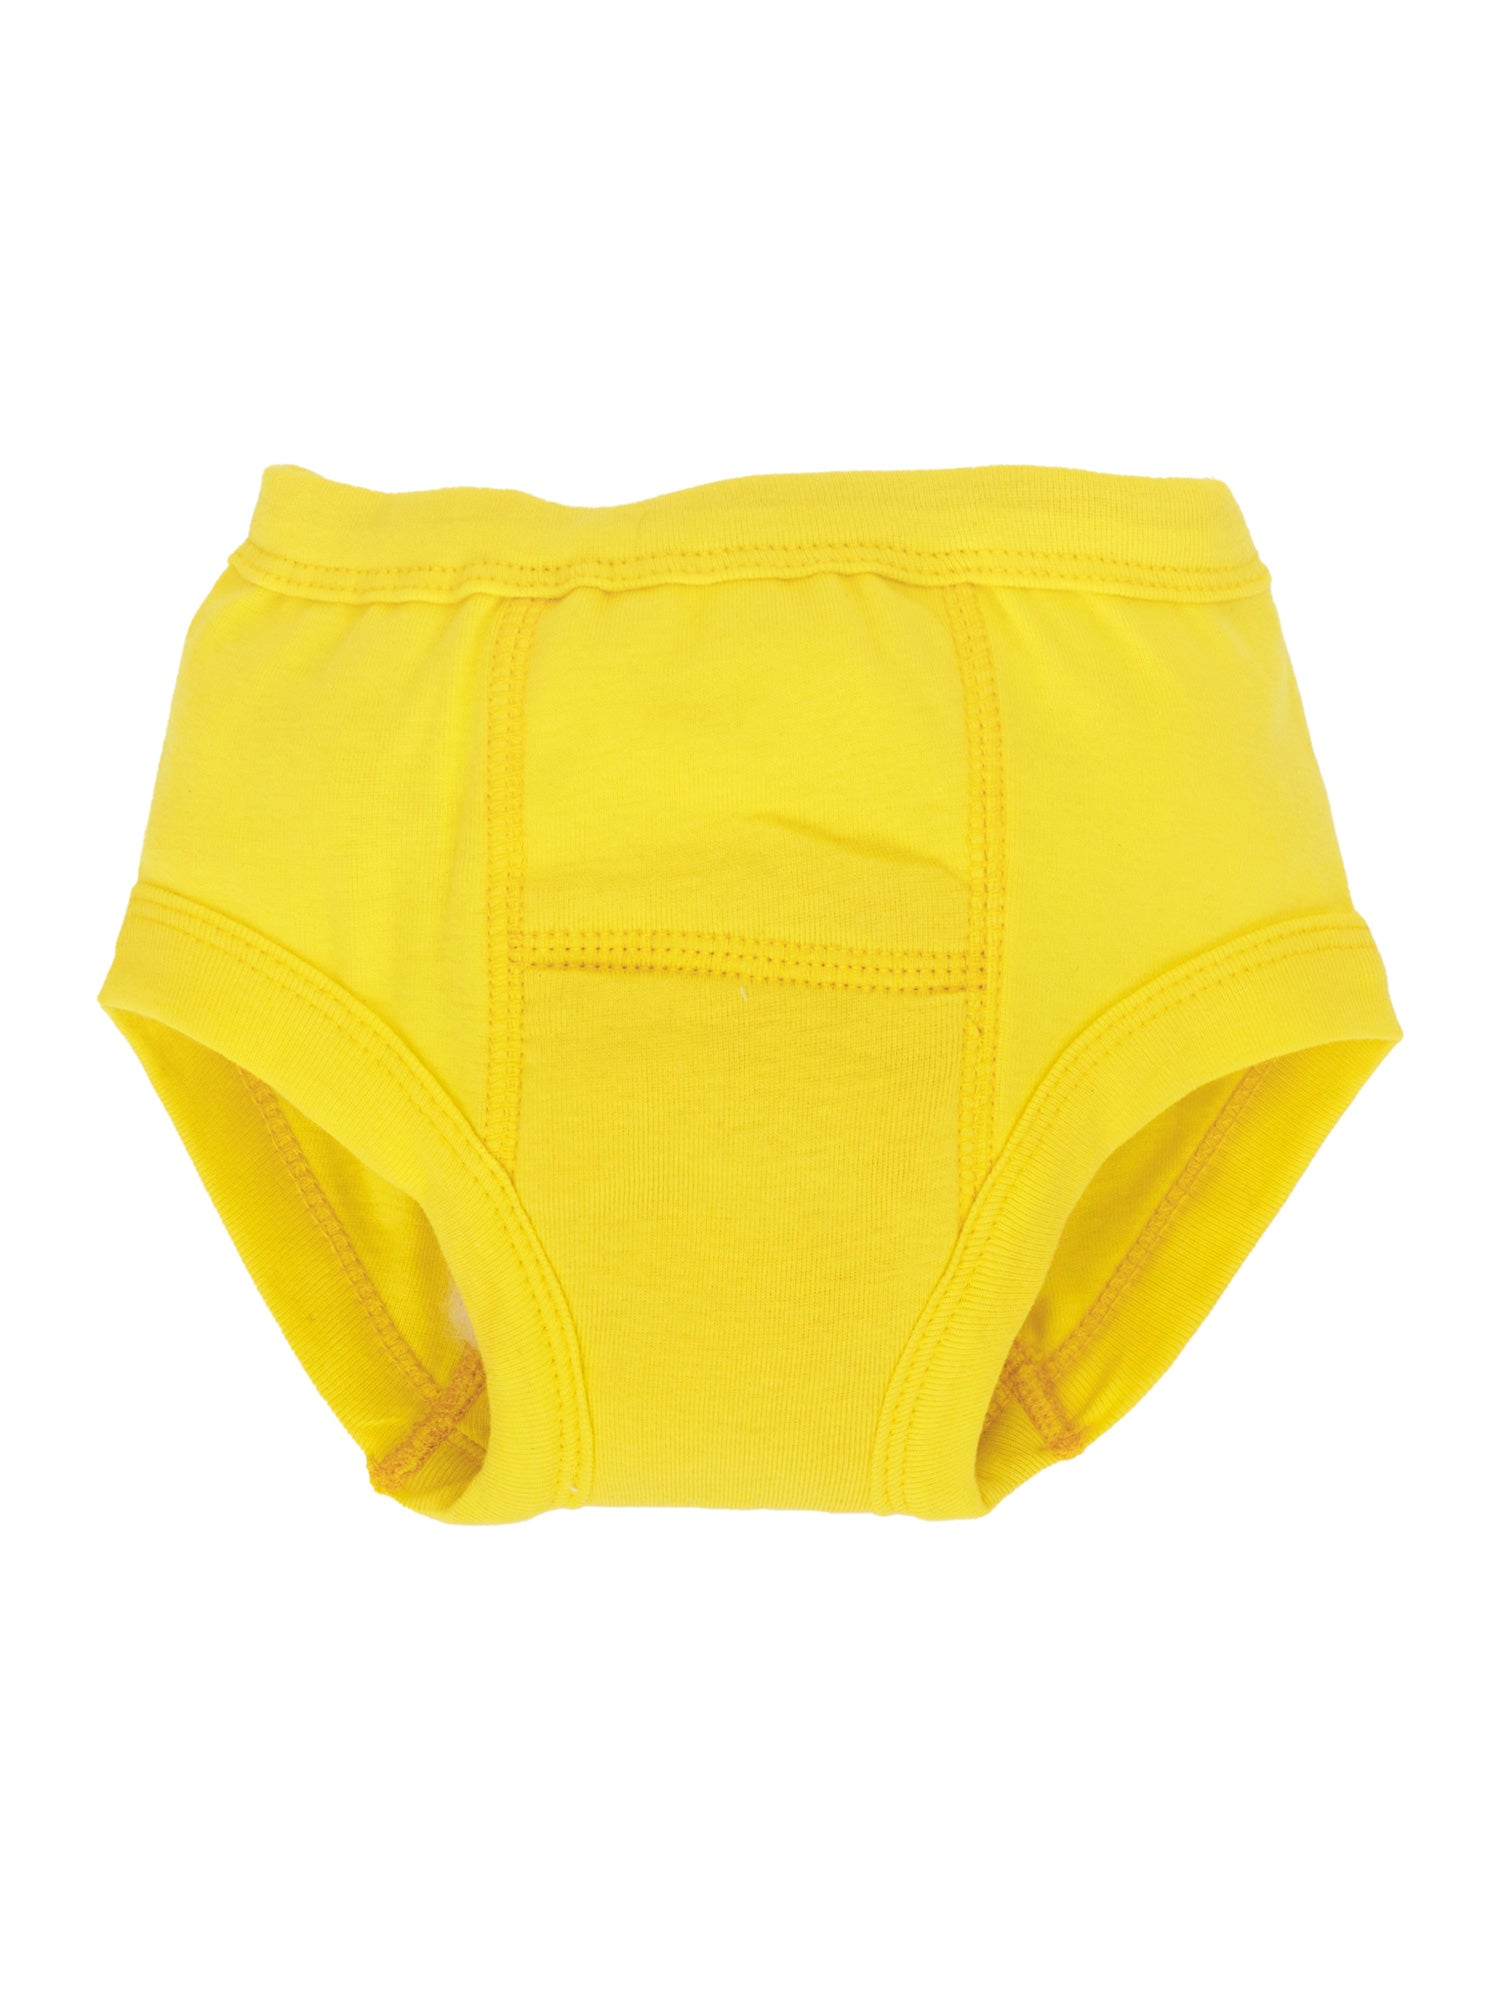 Potty Training Pants - Solid Yellow